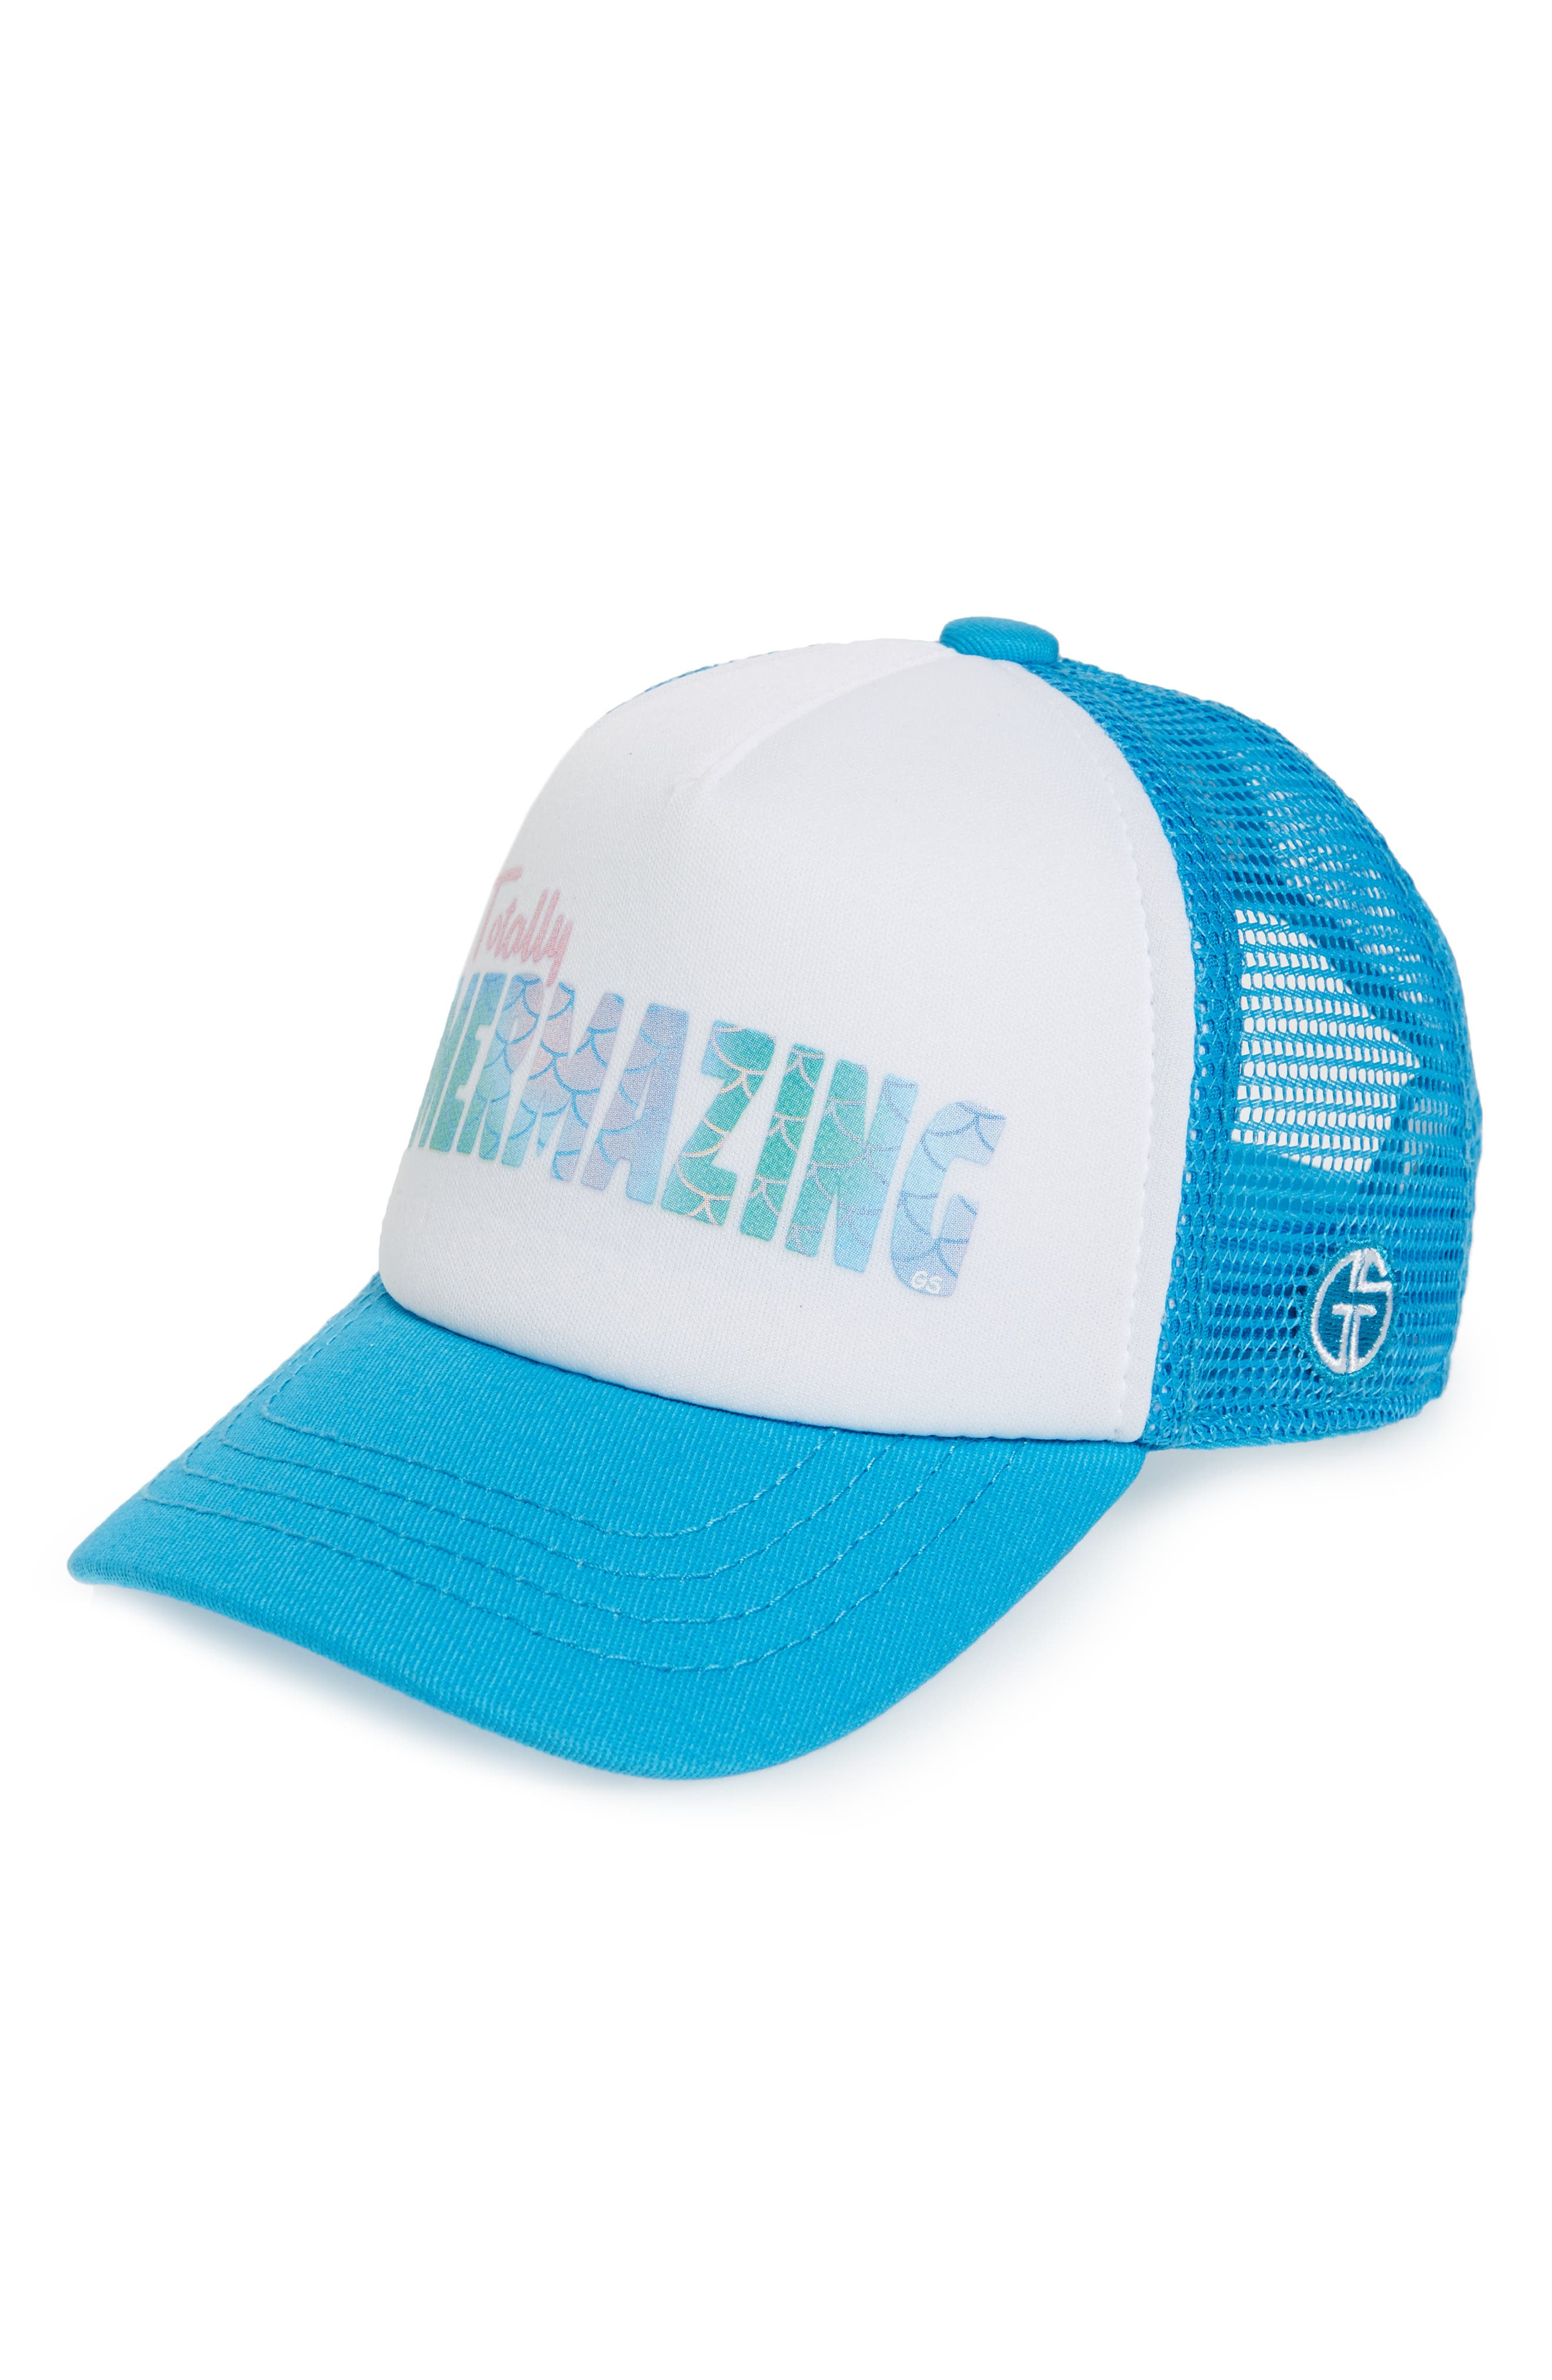 Totally Mermazing Trucker Hat,                             Main thumbnail 1, color,                             Teal/ White